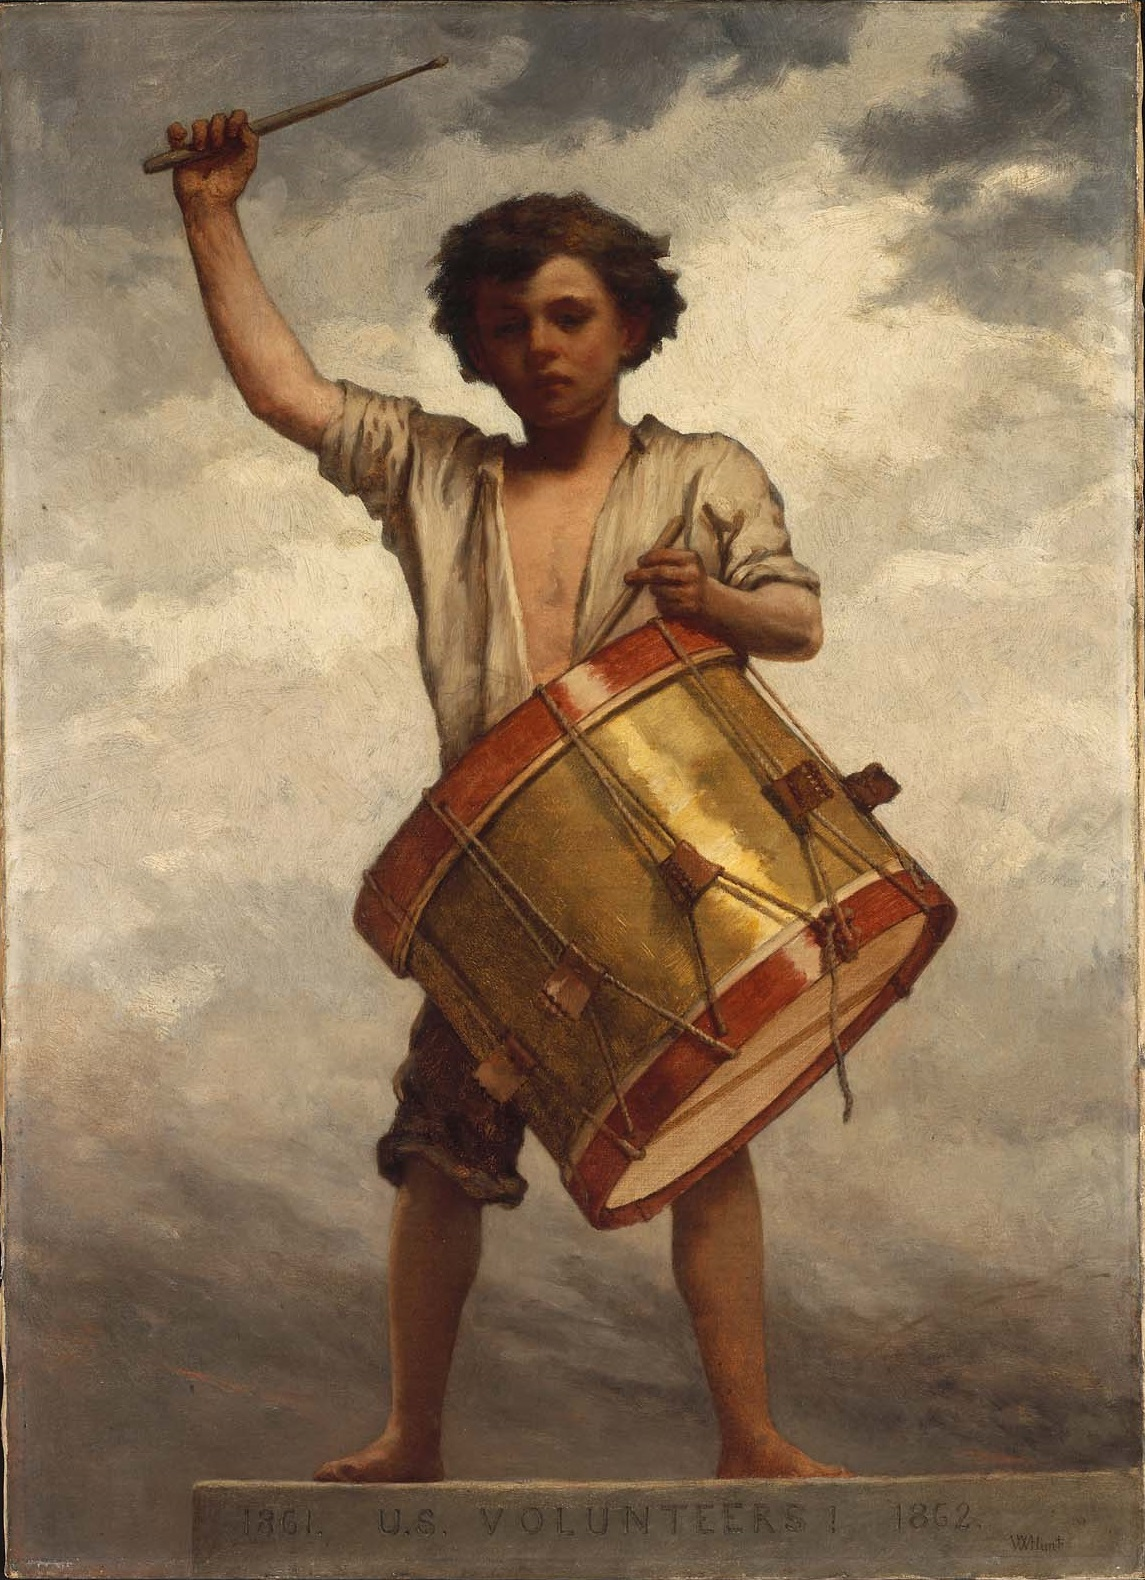 https://i0.wp.com/upload.wikimedia.org/wikipedia/commons/4/48/The_Drummer_Boy_William_Morris_Hunt.jpeg